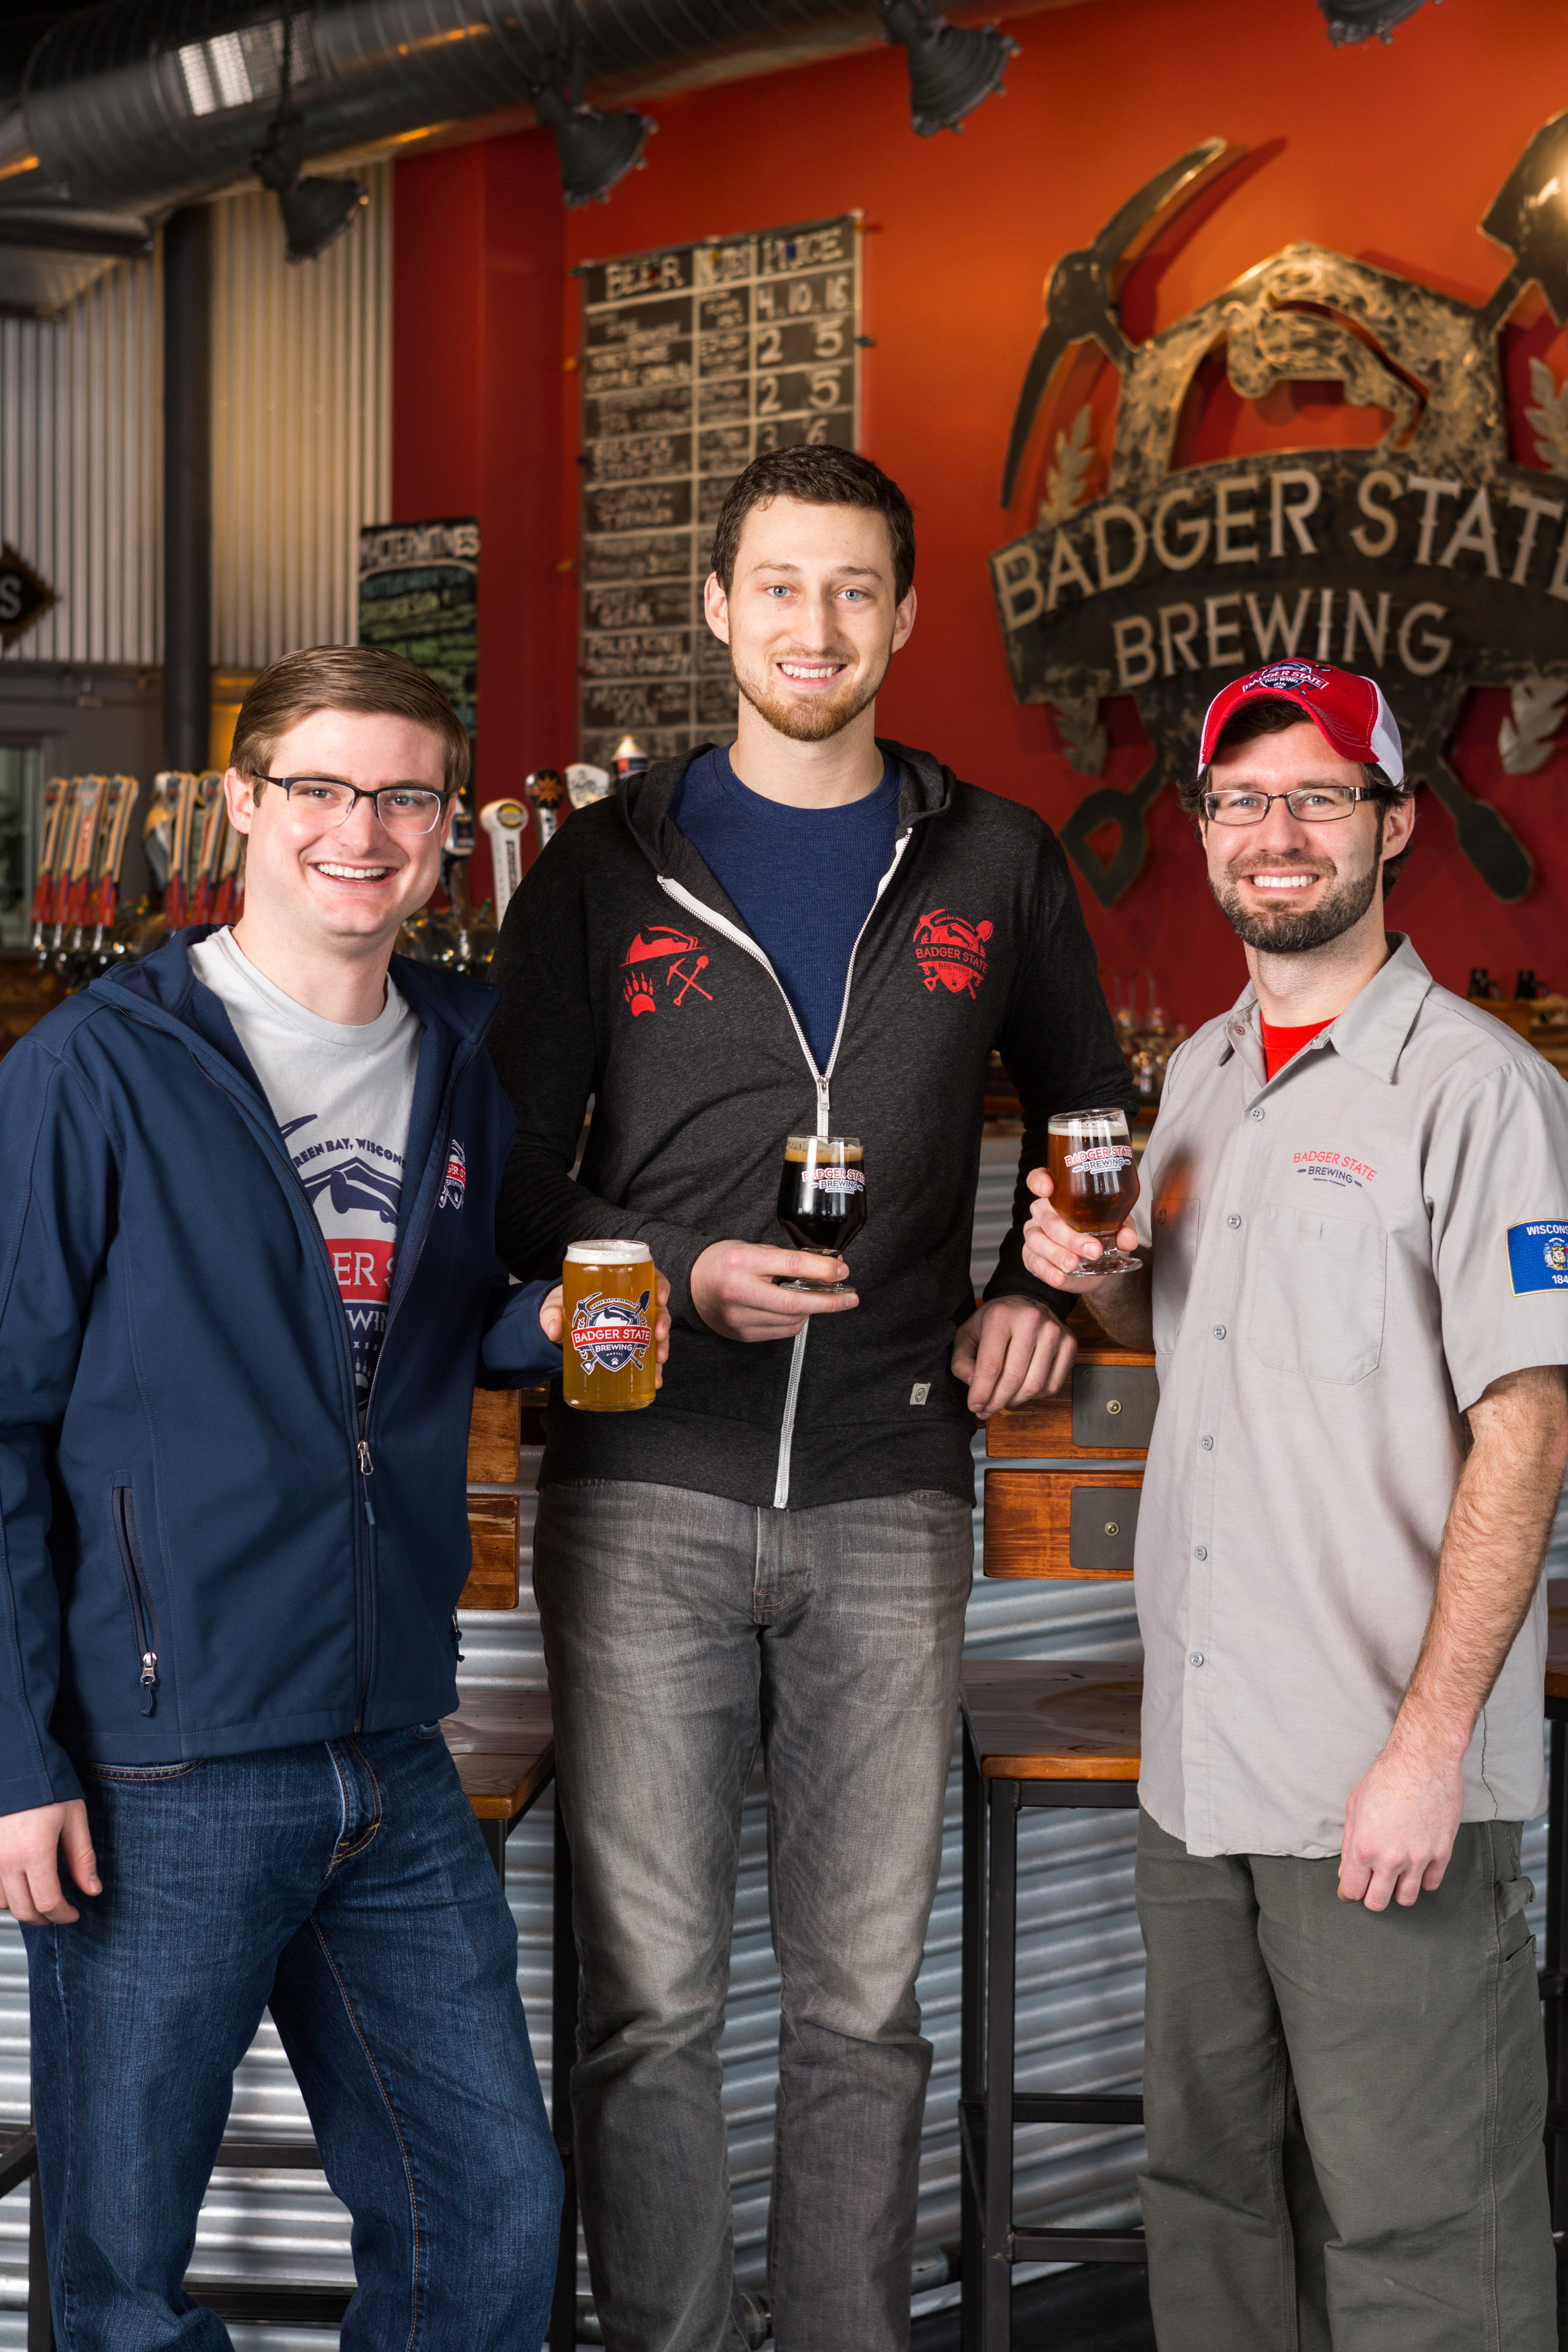 Mike, Andrew, Sam - Meet the team of Badger State Brewing